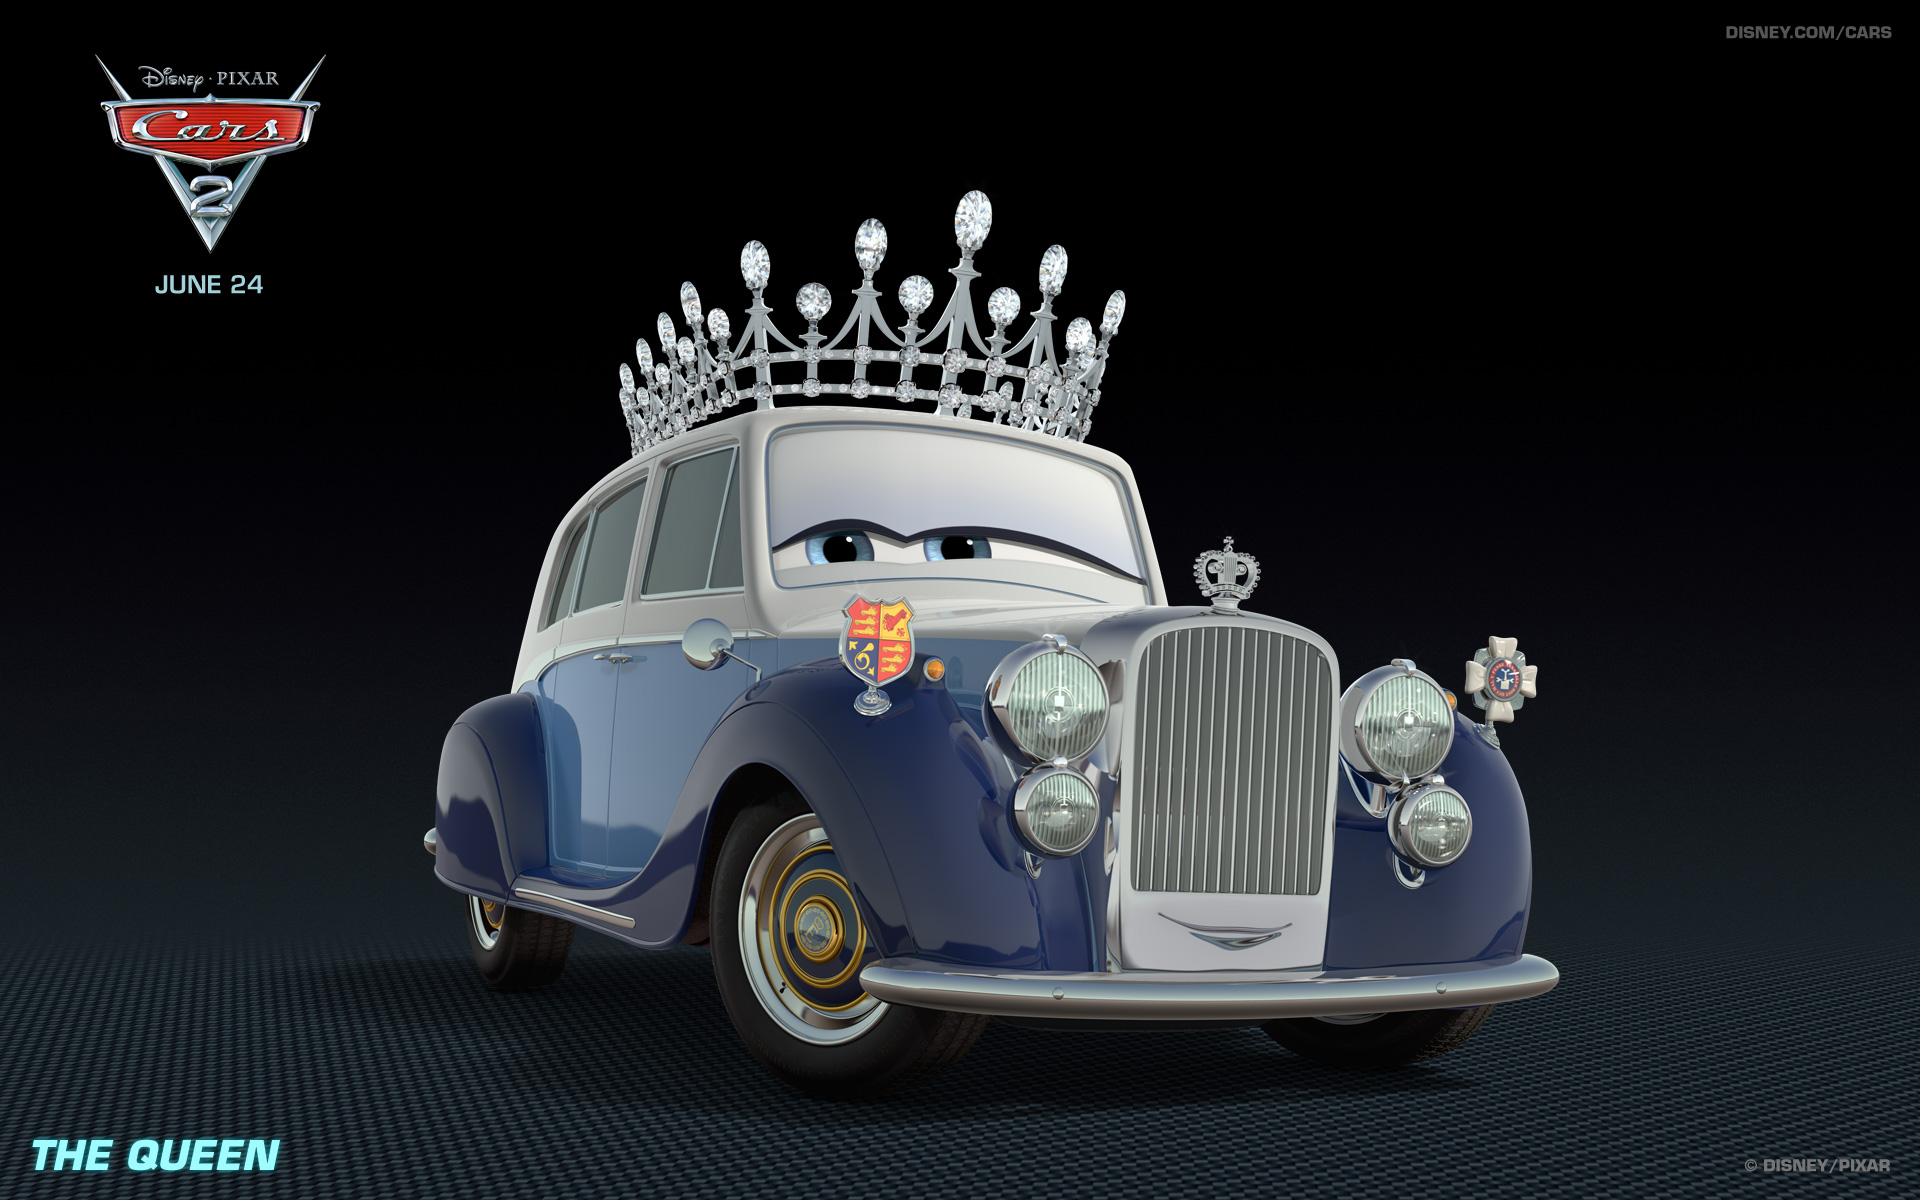 The Queen | Pixar Cars Wiki | FANDOM powered by Wikia